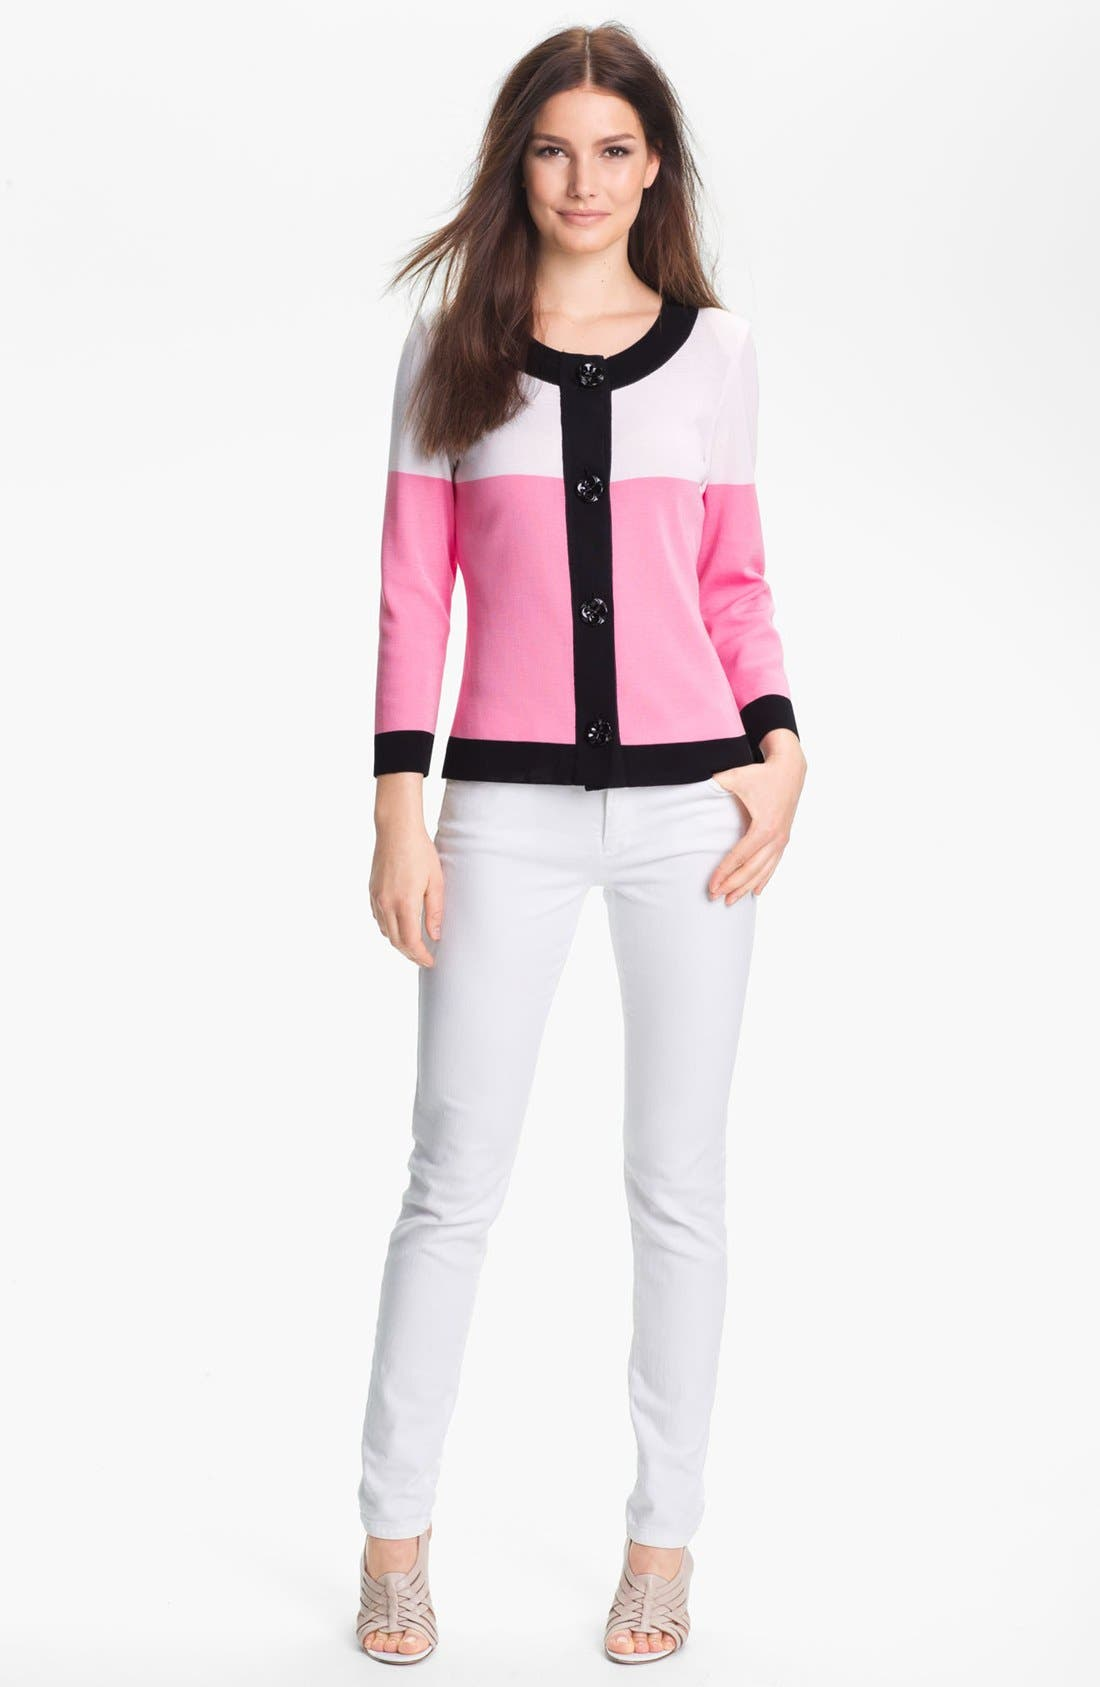 Alternate Image 1 Selected - Exclusively Misook 'Ana' Cardigan (Petite) (Online Exclusive)